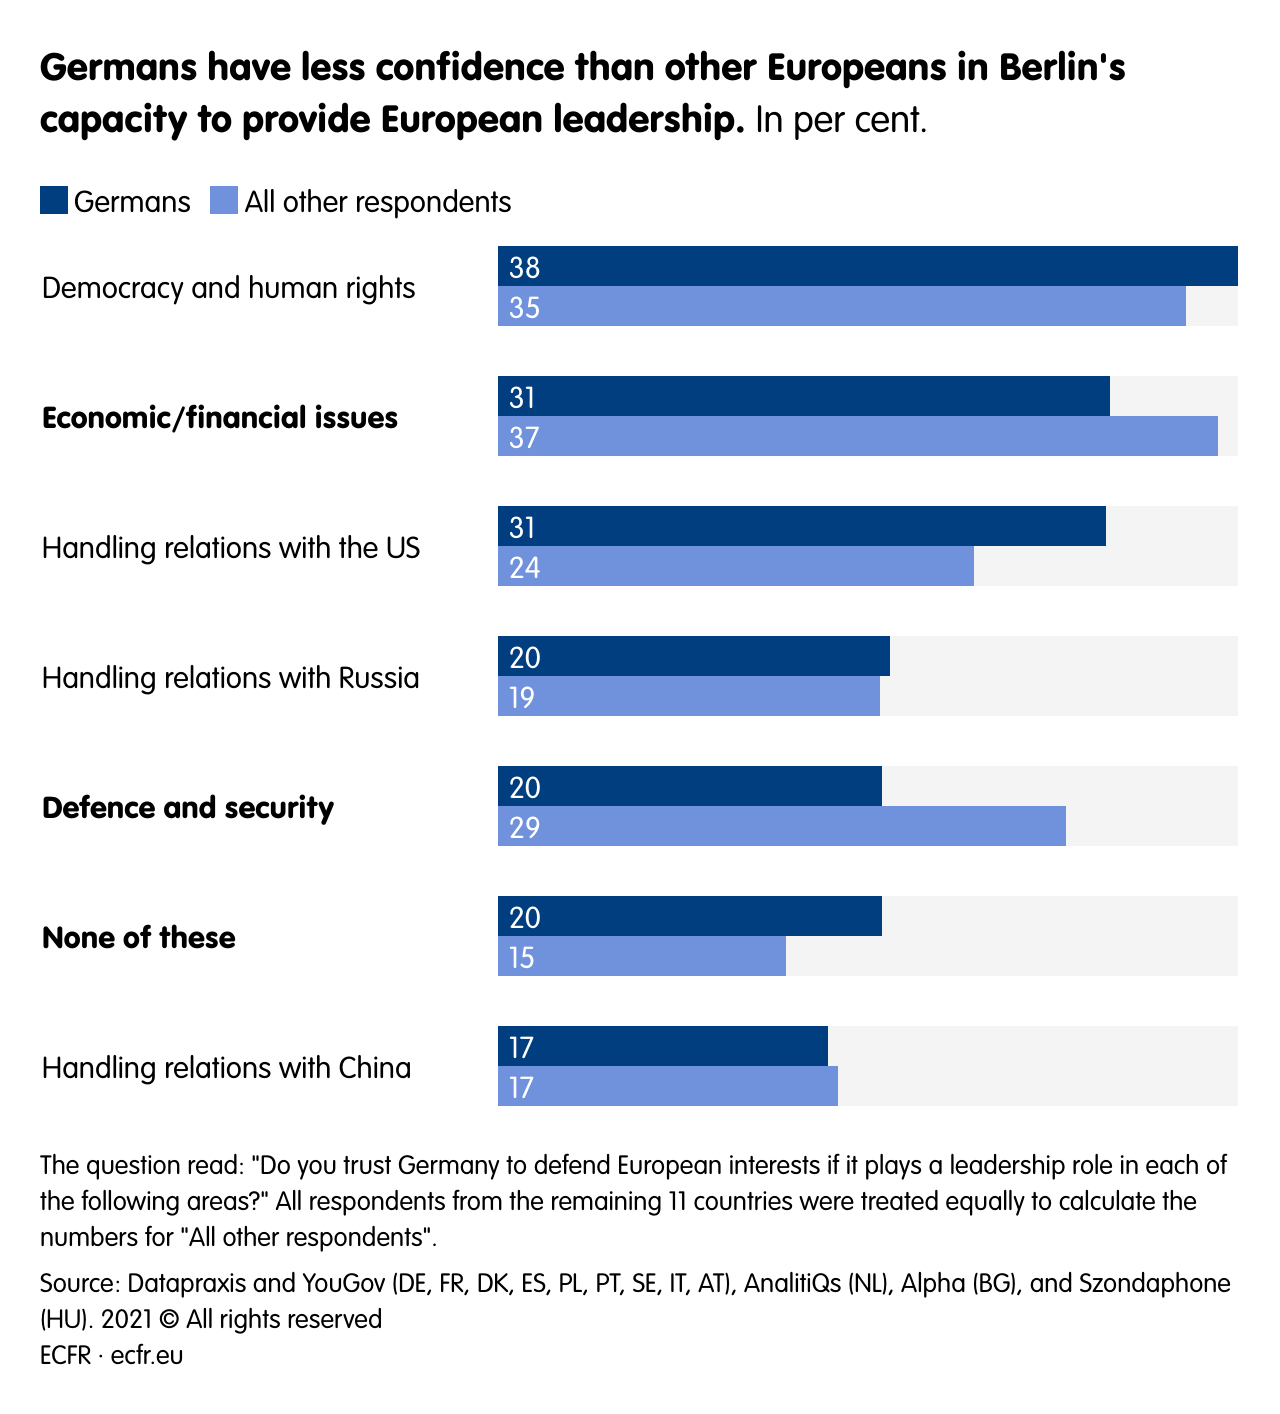 Germans have less confidence than other Europeans in Berlin's capacity to provide European leadership.